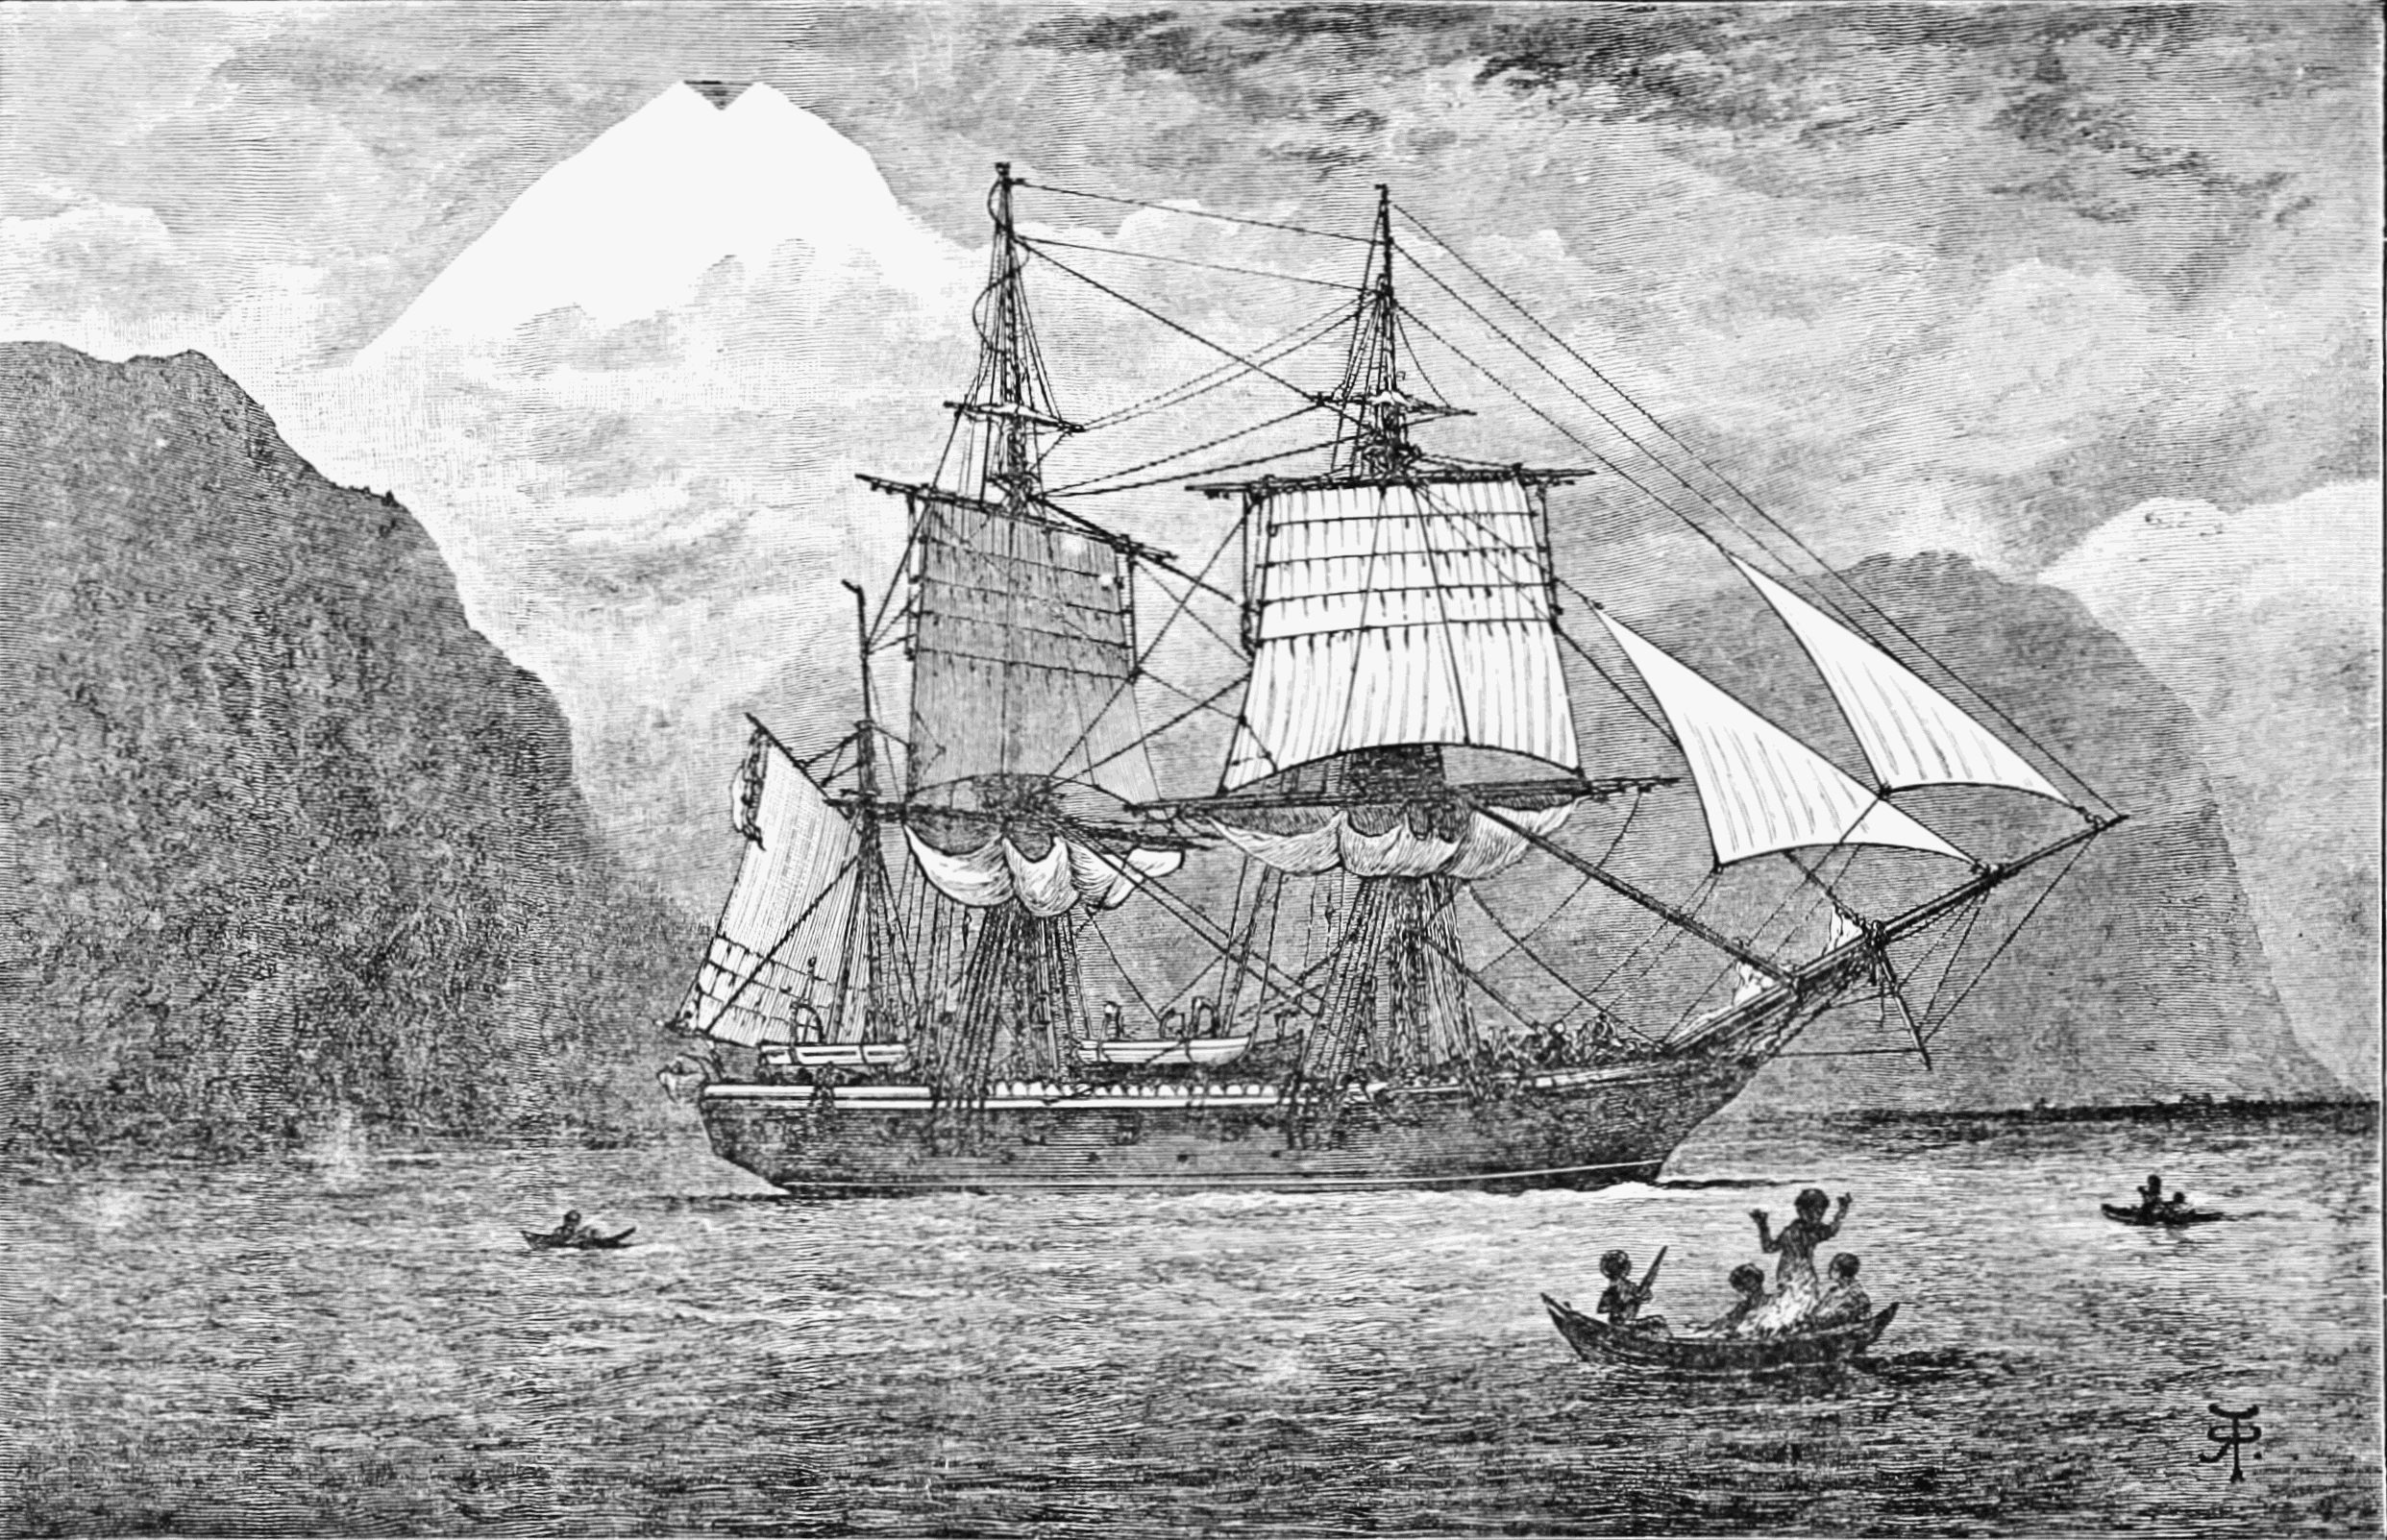 PSM_V57_D097_Hms_beagle_in_the_straits_o